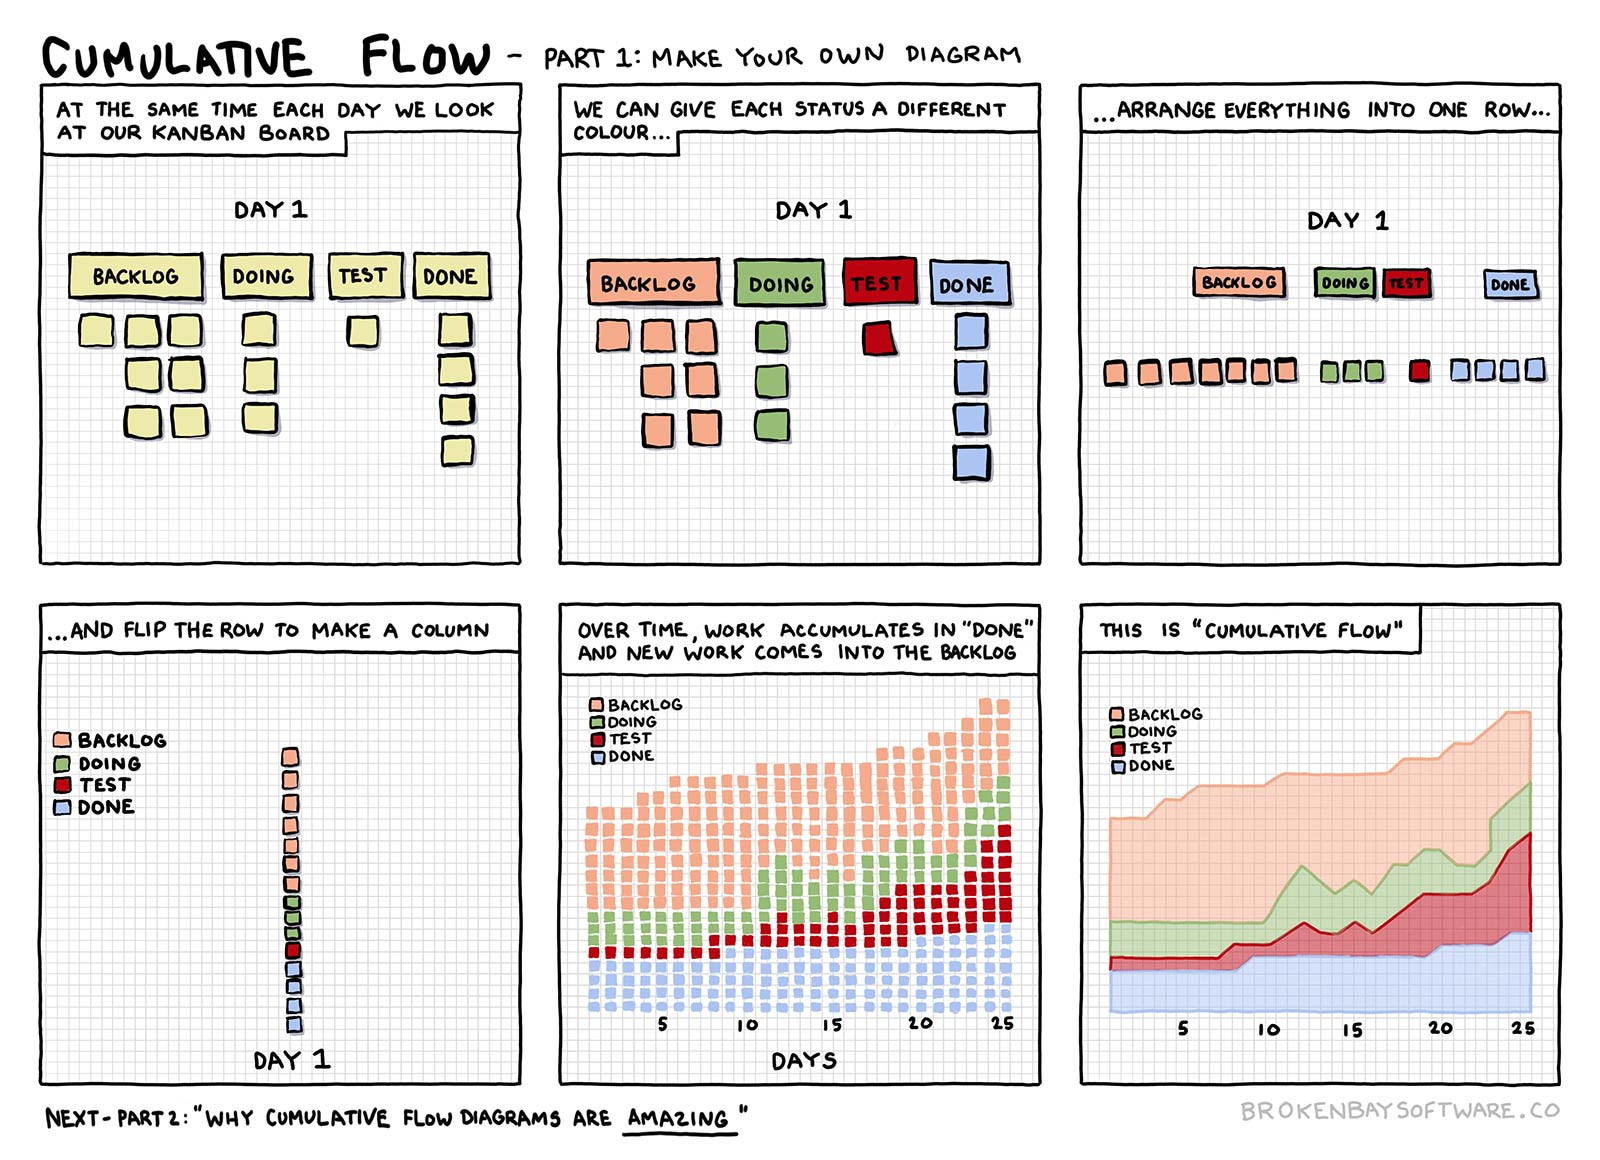 A comic about how to turn a Kanban board into a cumulative flow diagram. Part 1 of 2.